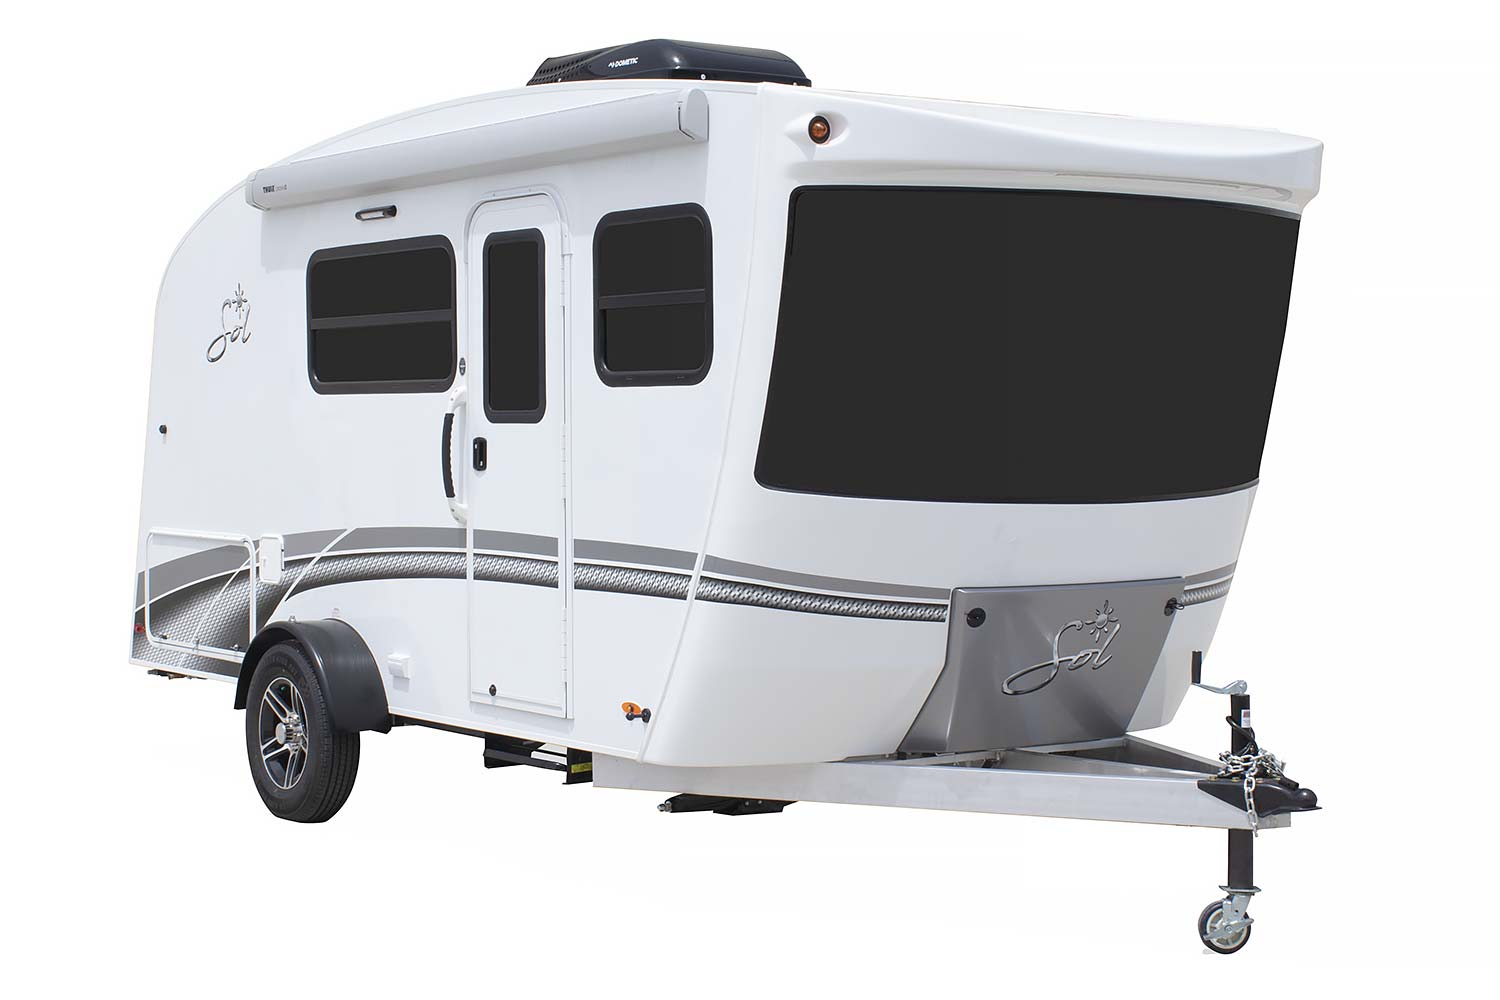 Sol Horizon Travel Trailer - inTech RV